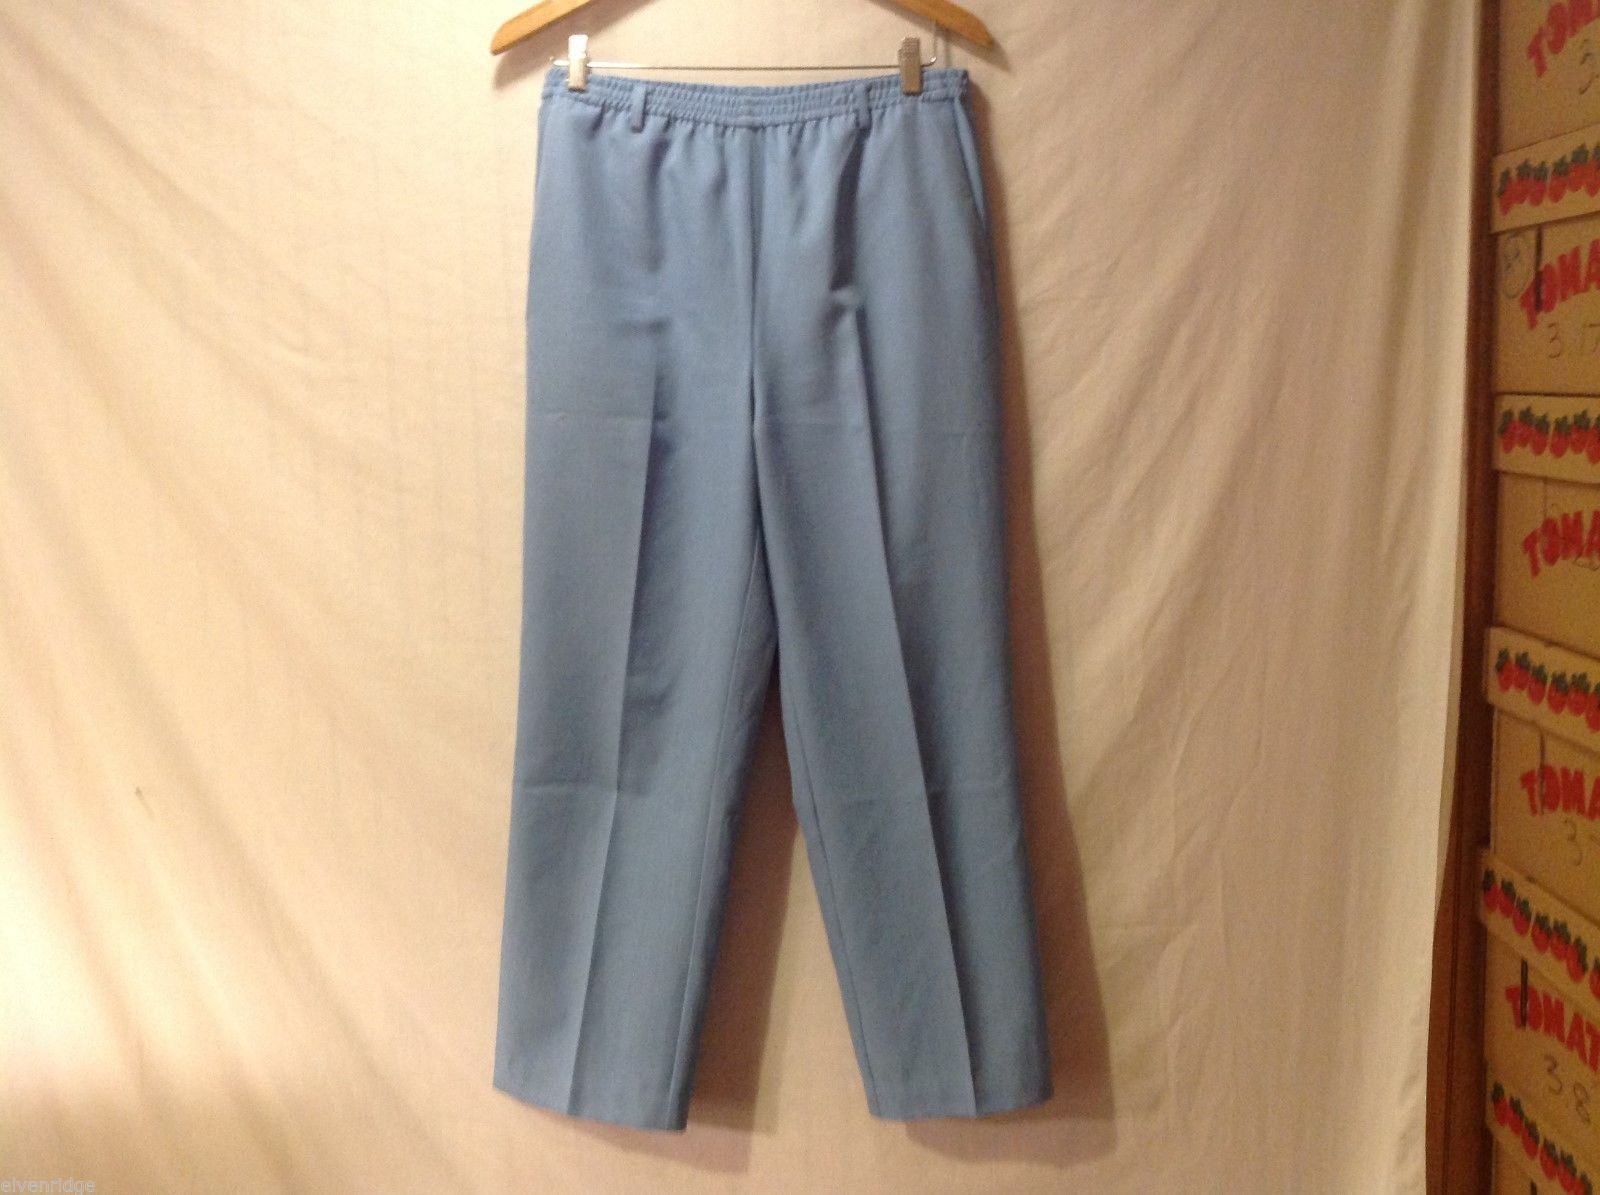 The TOG Shop WomensLight Blue Pants, Size 8